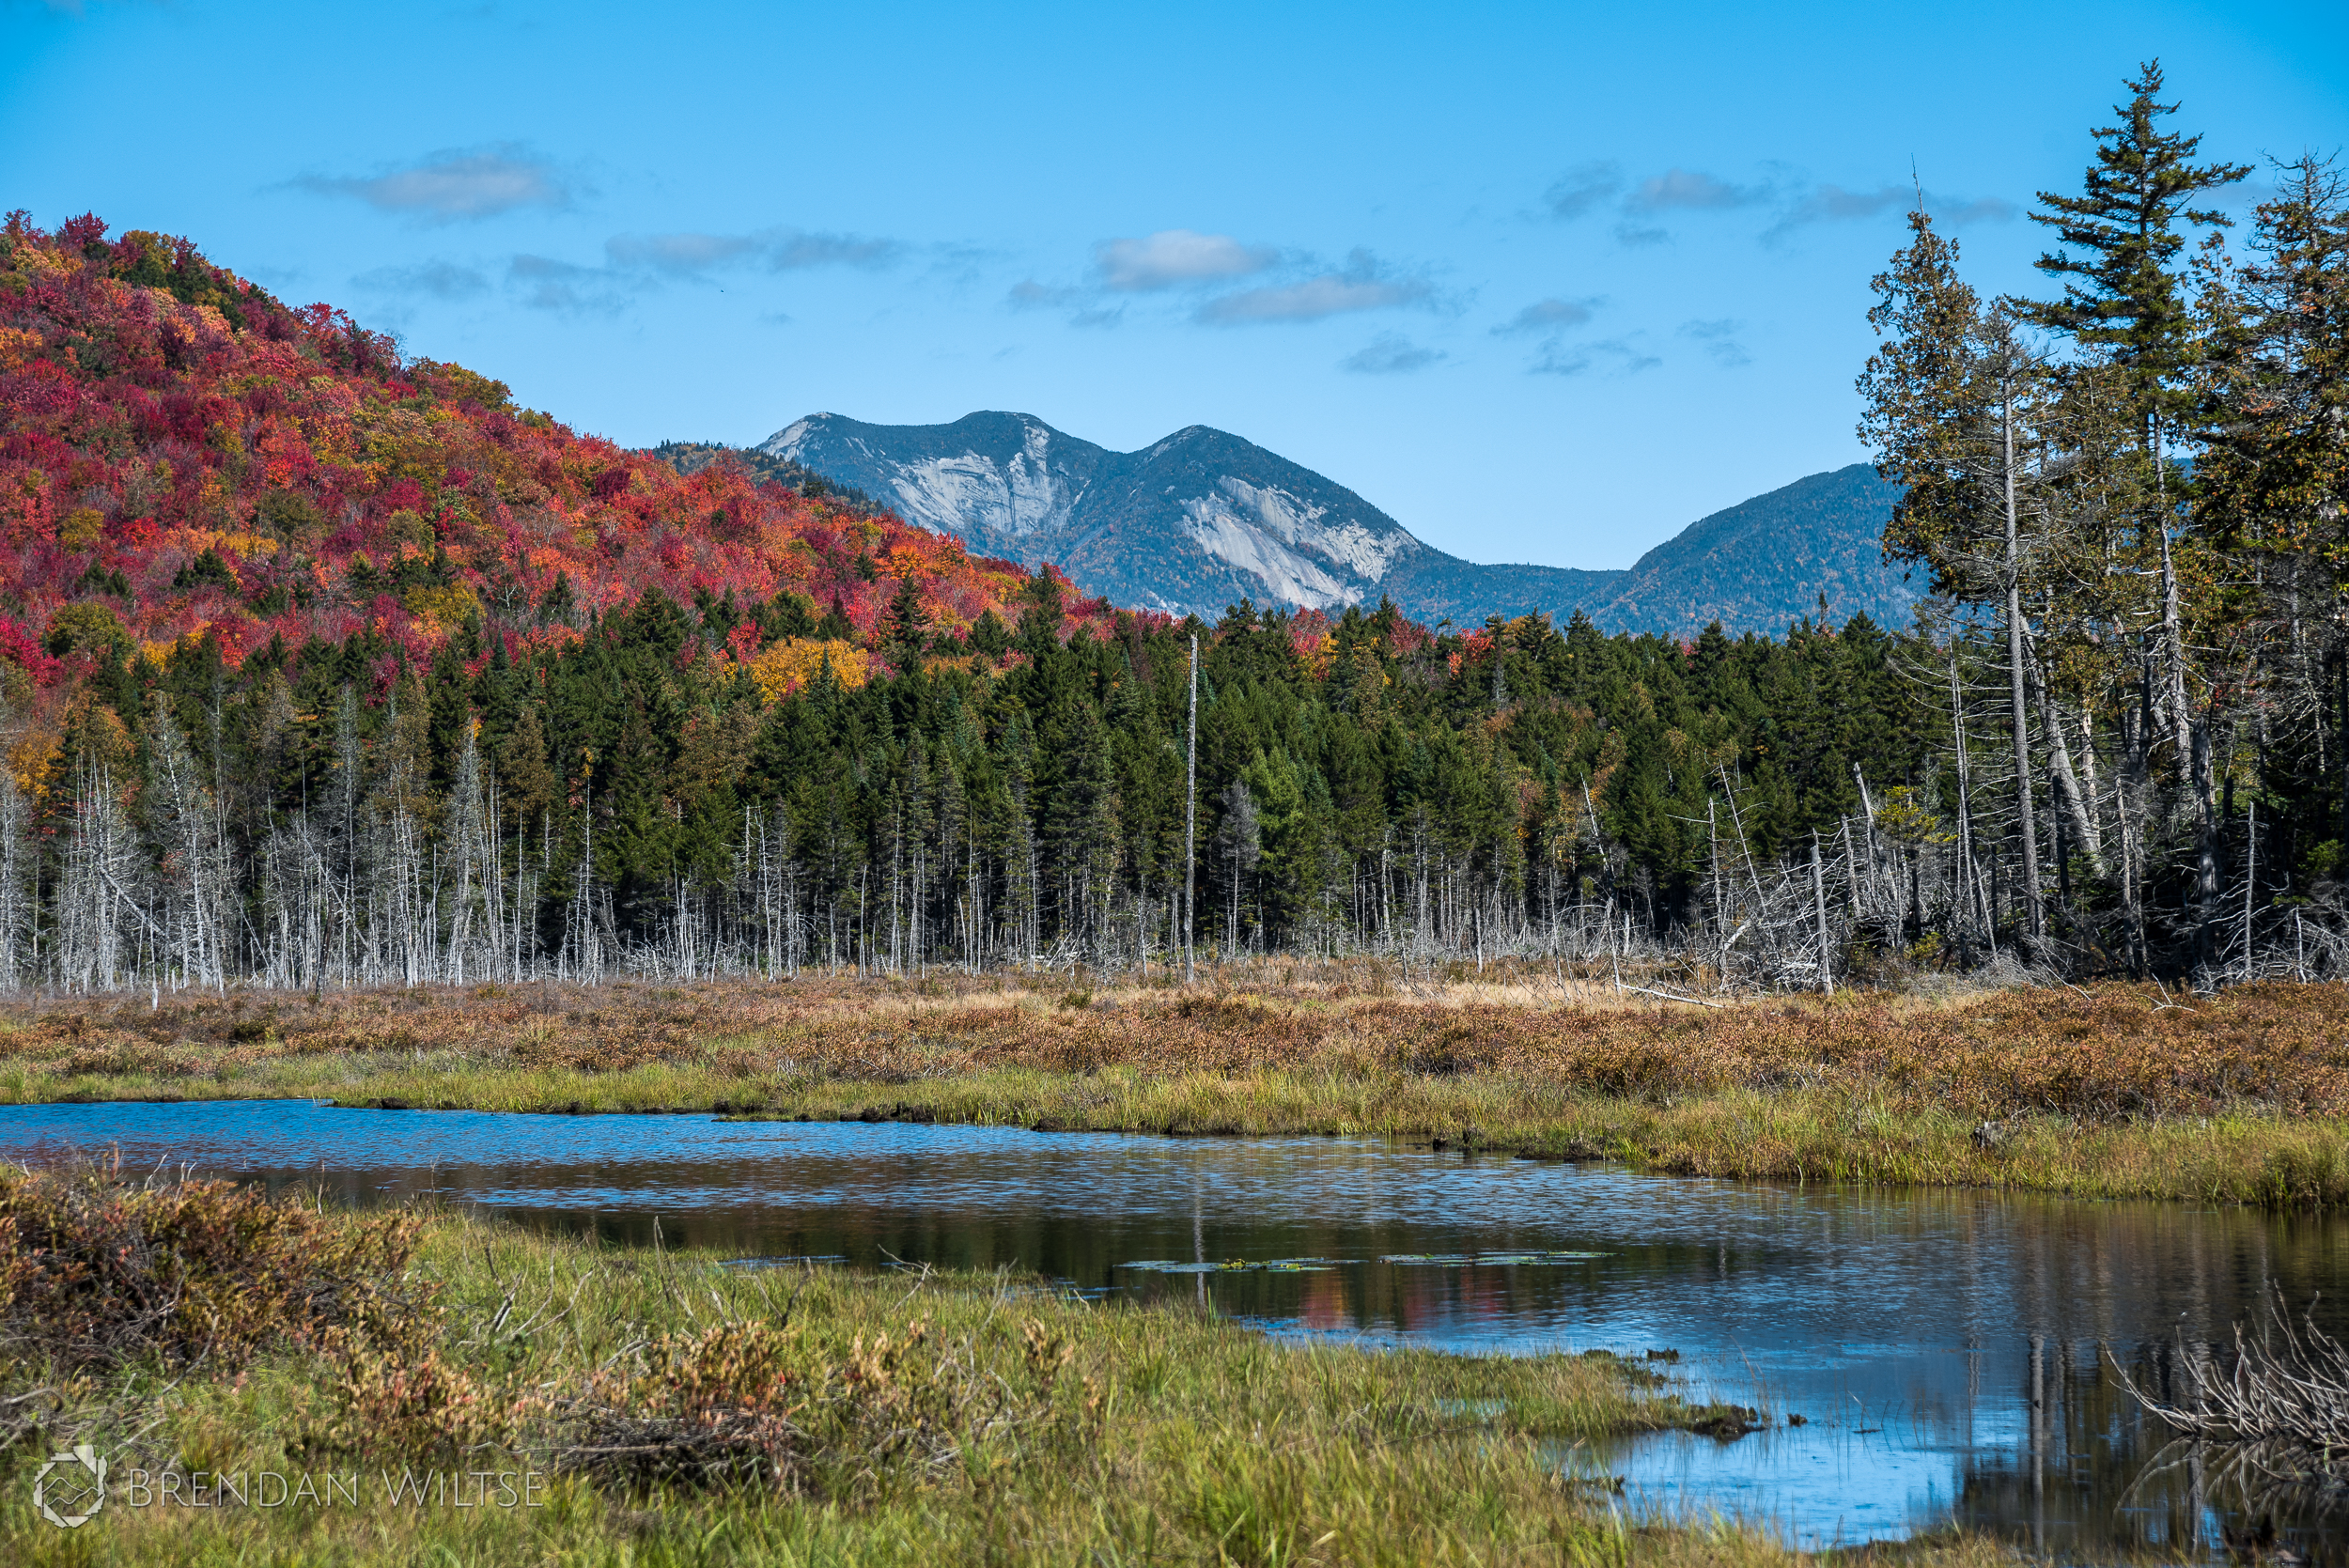 Adirondack Wilderness Advocates Calls for Rejection of the APA's DSEIS for the Boreas Ponds Tract